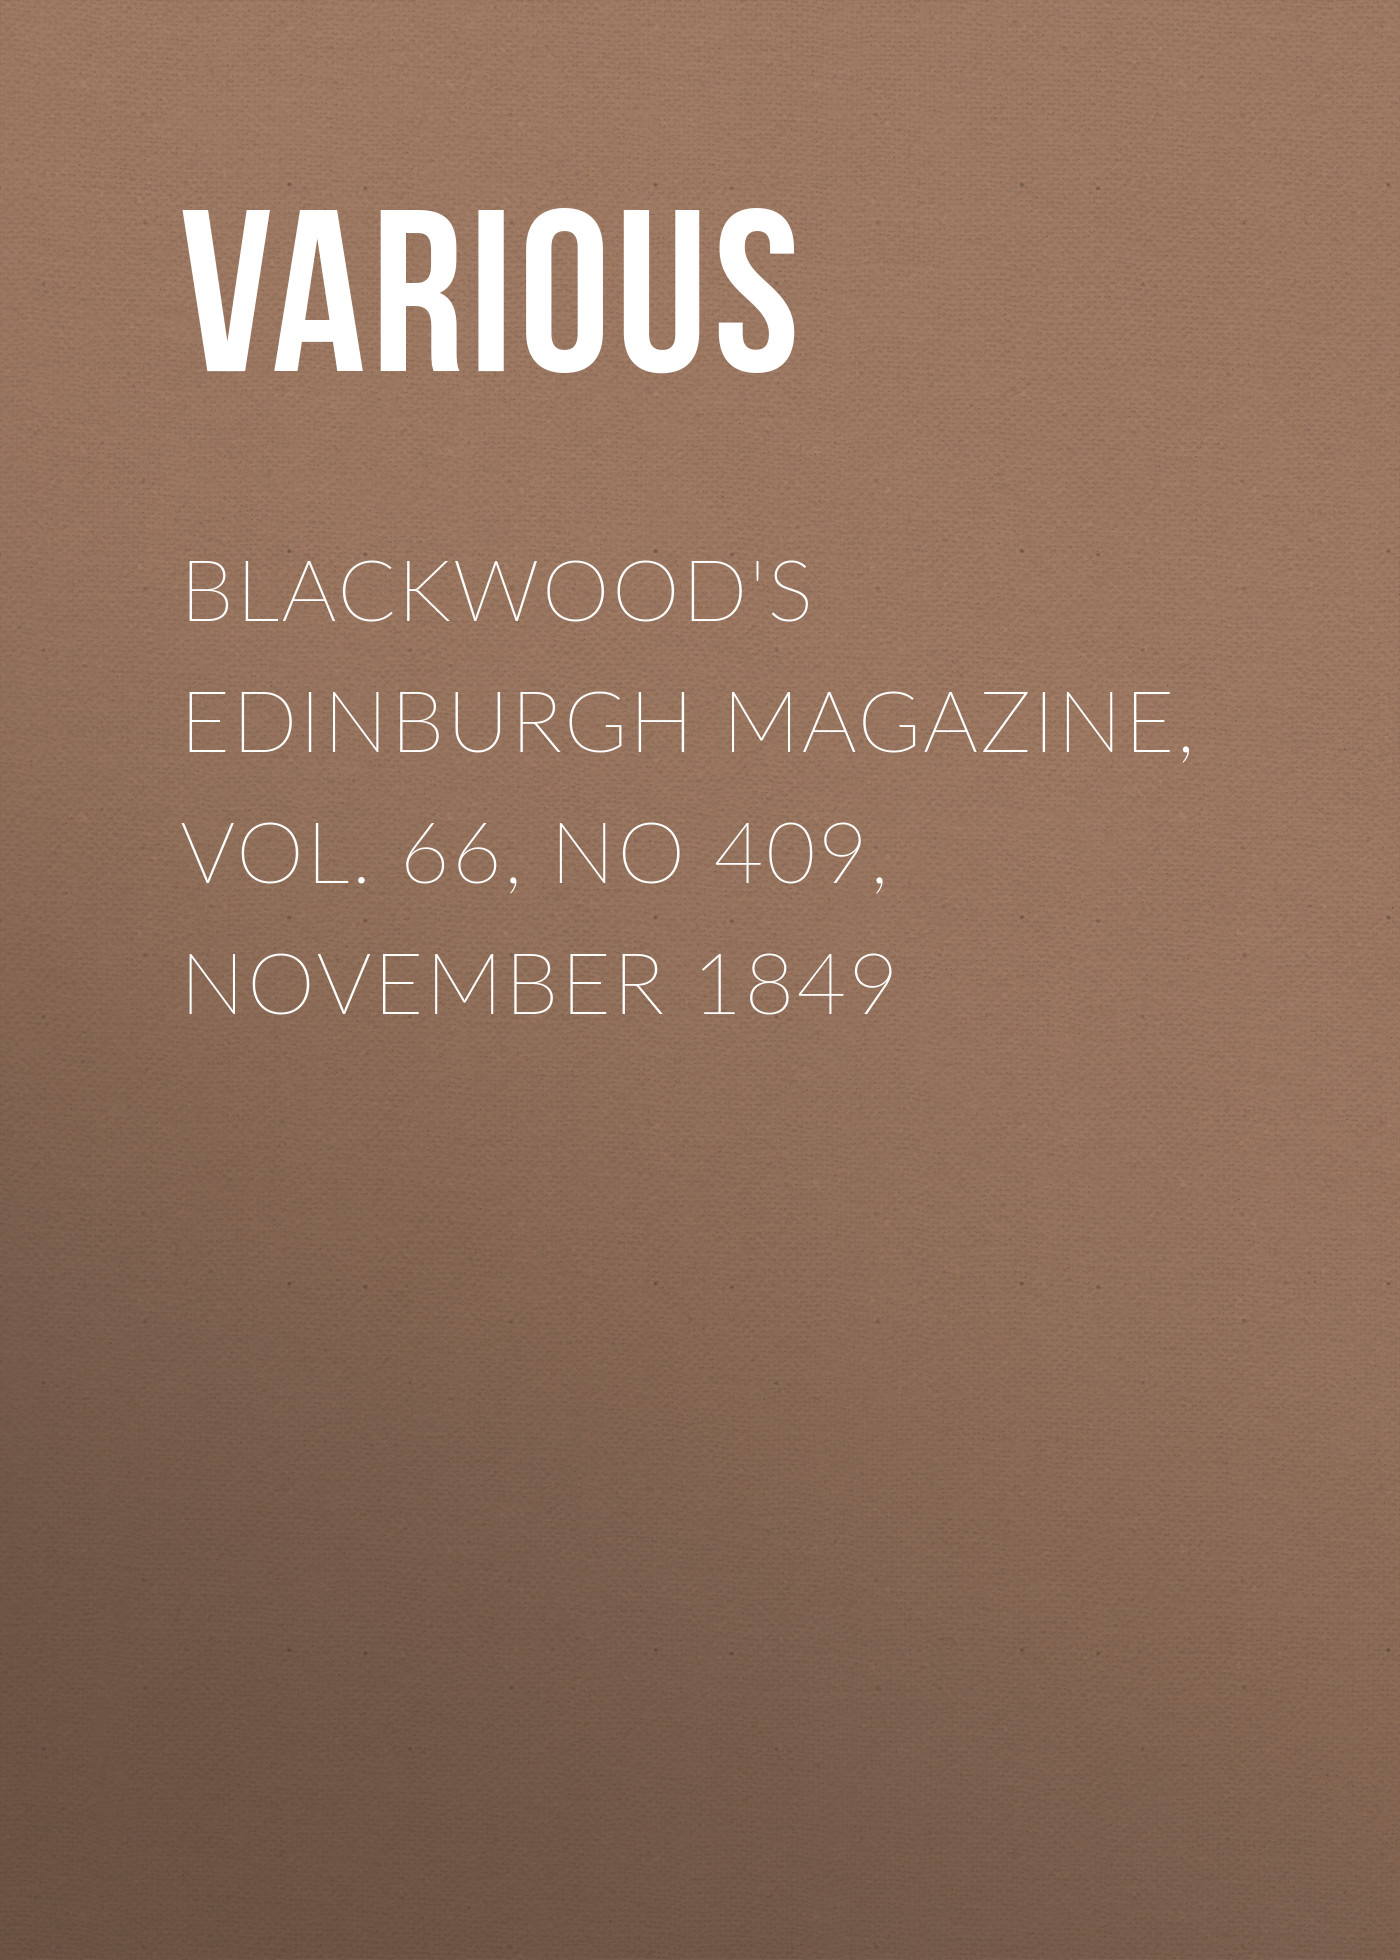 Various Blackwood's Edinburgh Magazine, Vol. 66, No 409, November 1849 цена